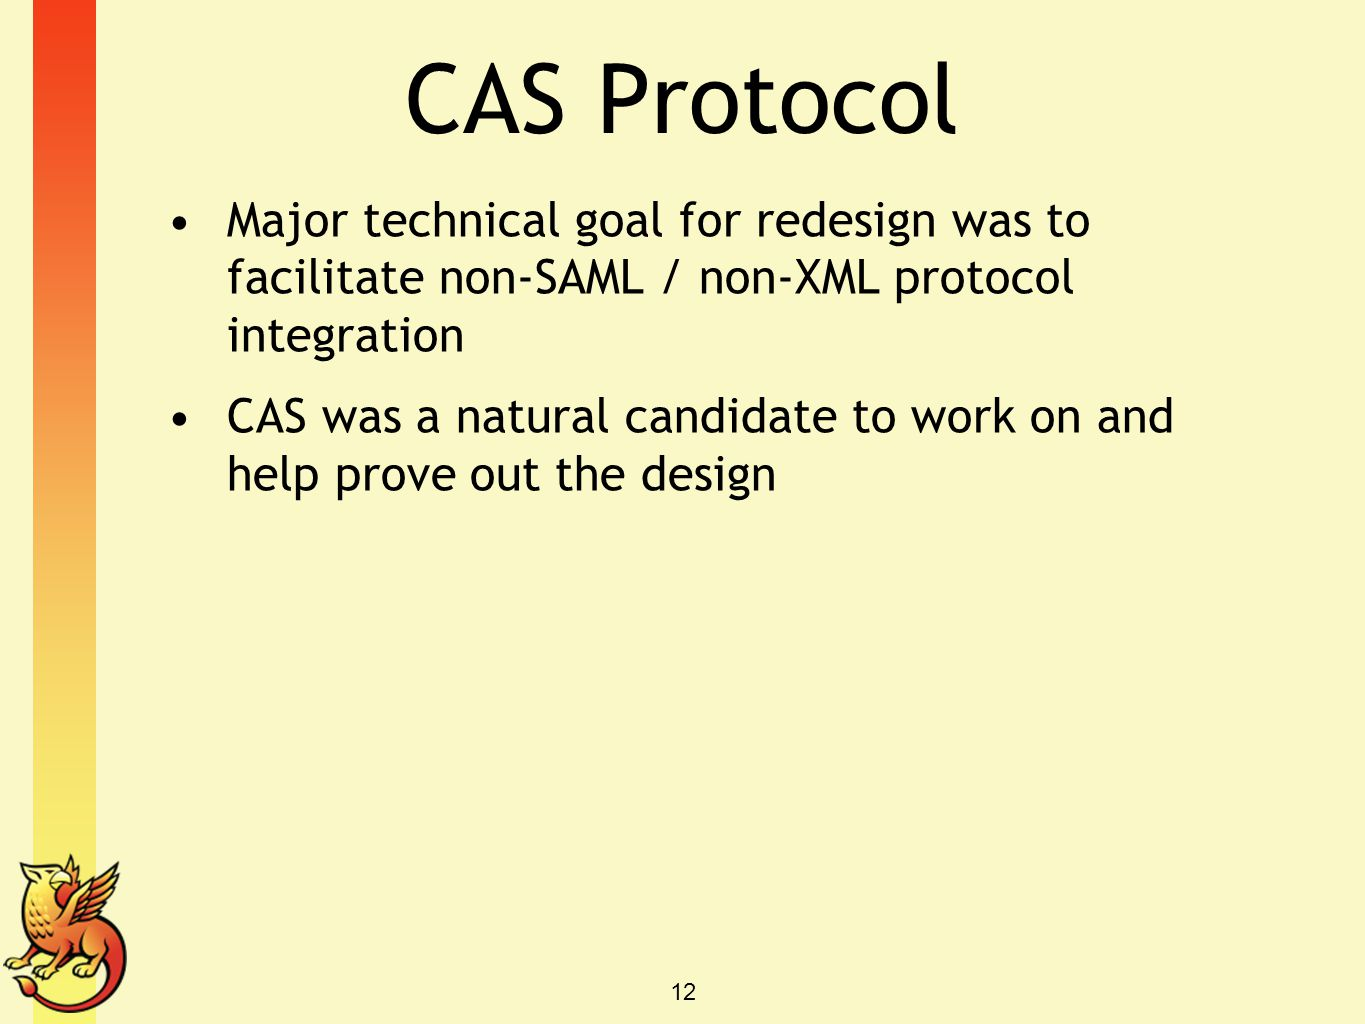 CAS Protocol Major technical goal for redesign was to facilitate non-SAML / non-XML protocol integration.